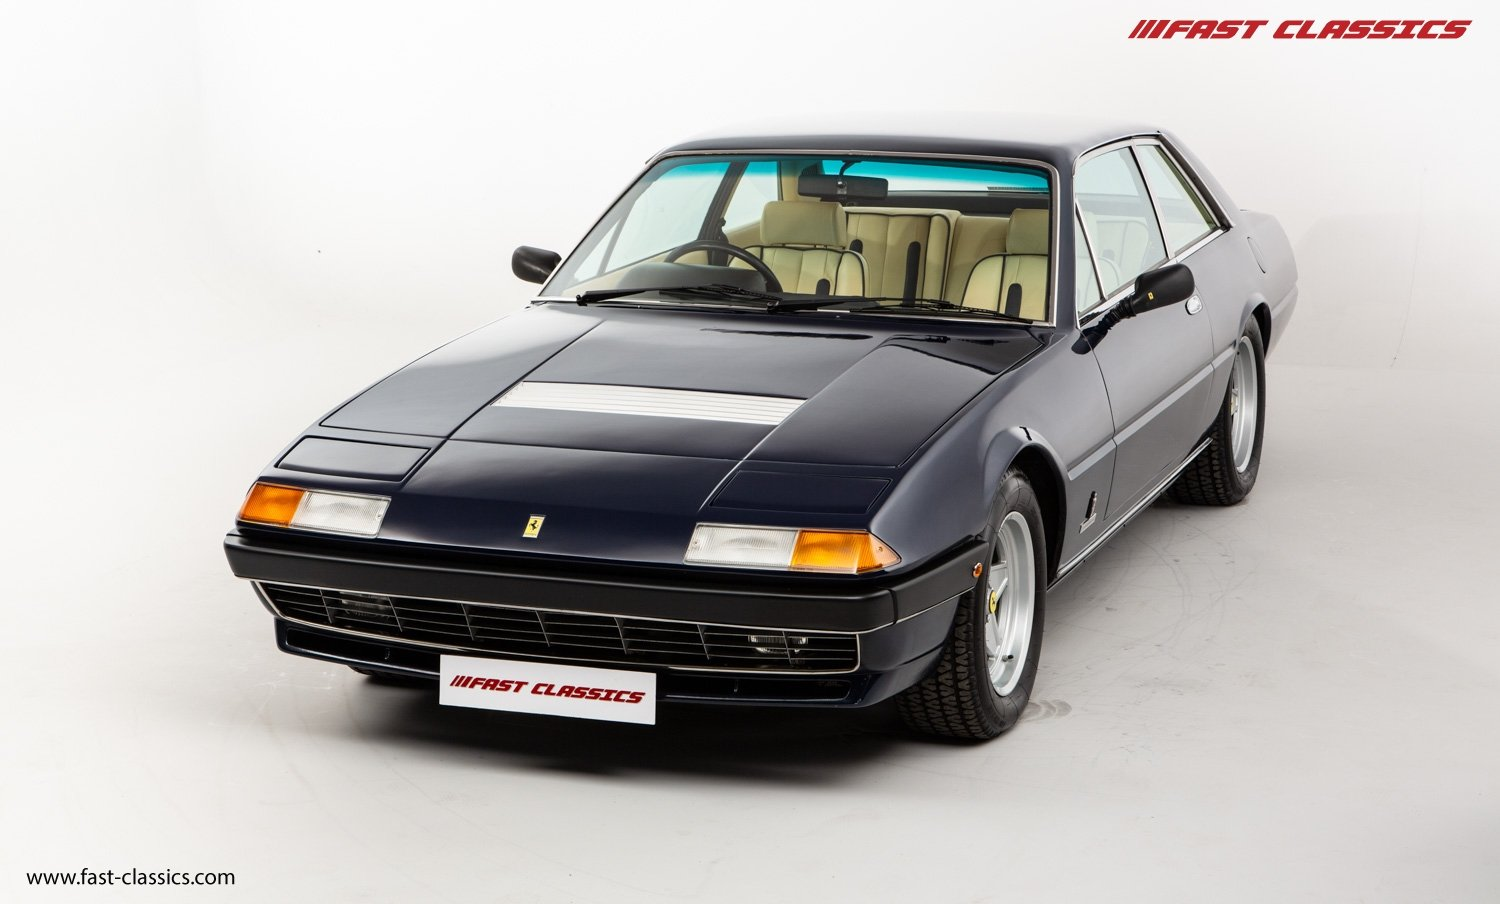 1980 FERRARI 400I // BLU POZZI // UK RHD // 1 OF 180 UK SUPPLIED For Sale (picture 3 of 21)